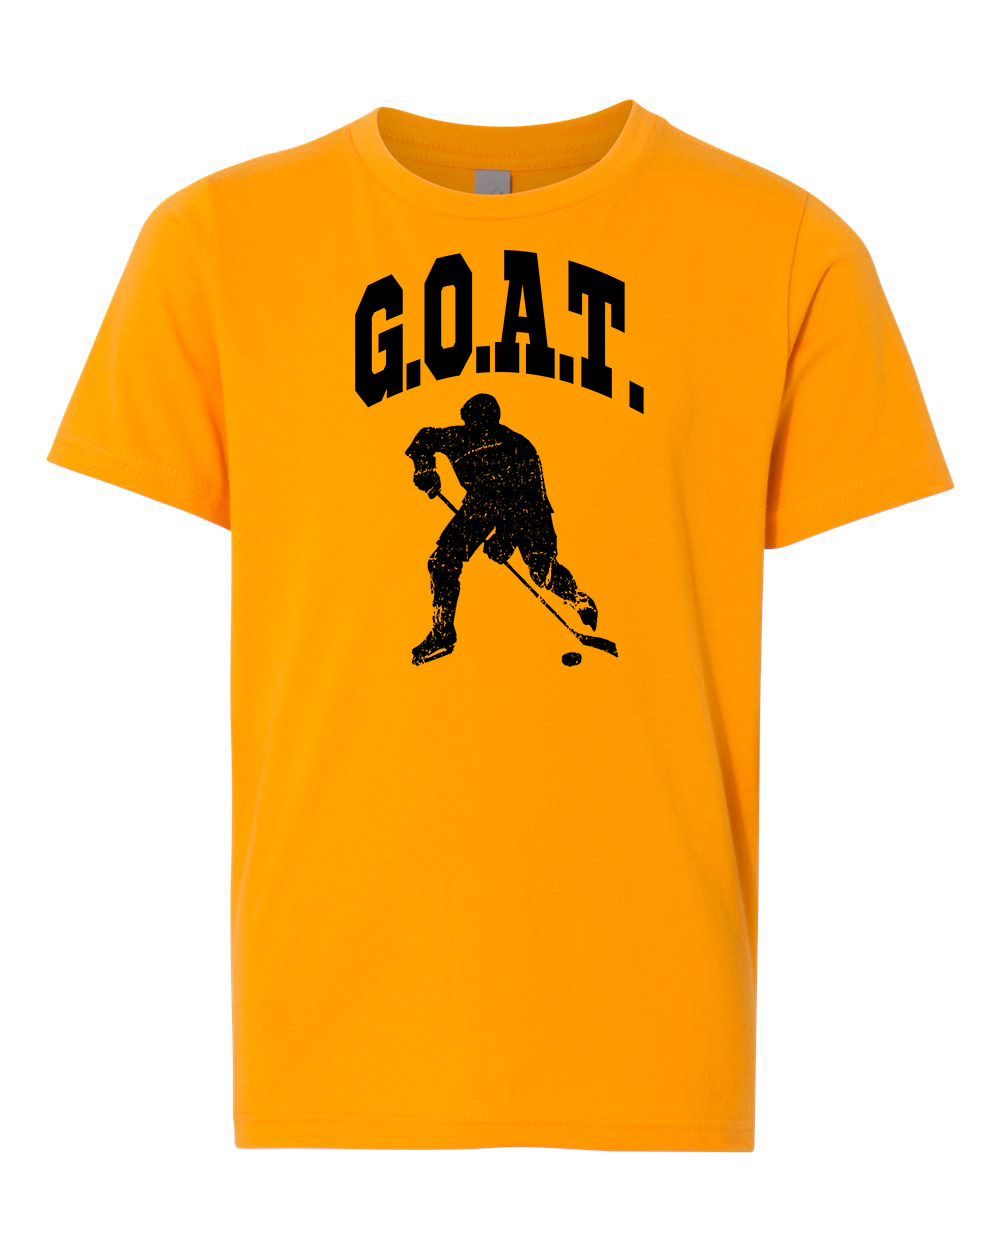 Greatest Of All Times G.O.A.T Hockey Youth Short Sleeve T-Shirt